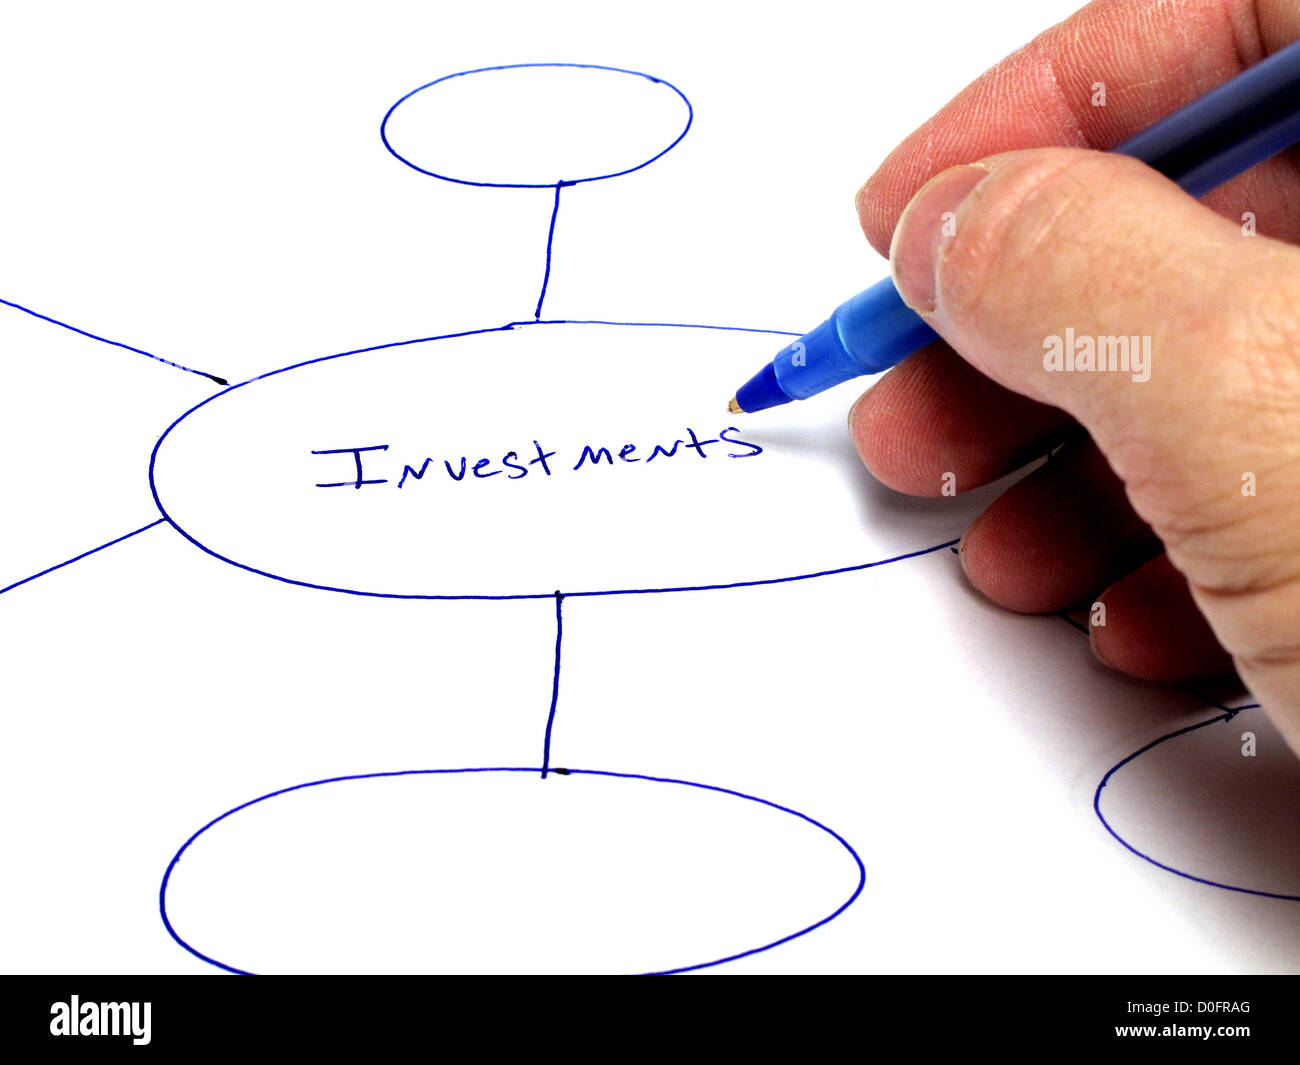 hight resolution of hand writing a diagram on a paper for business planning